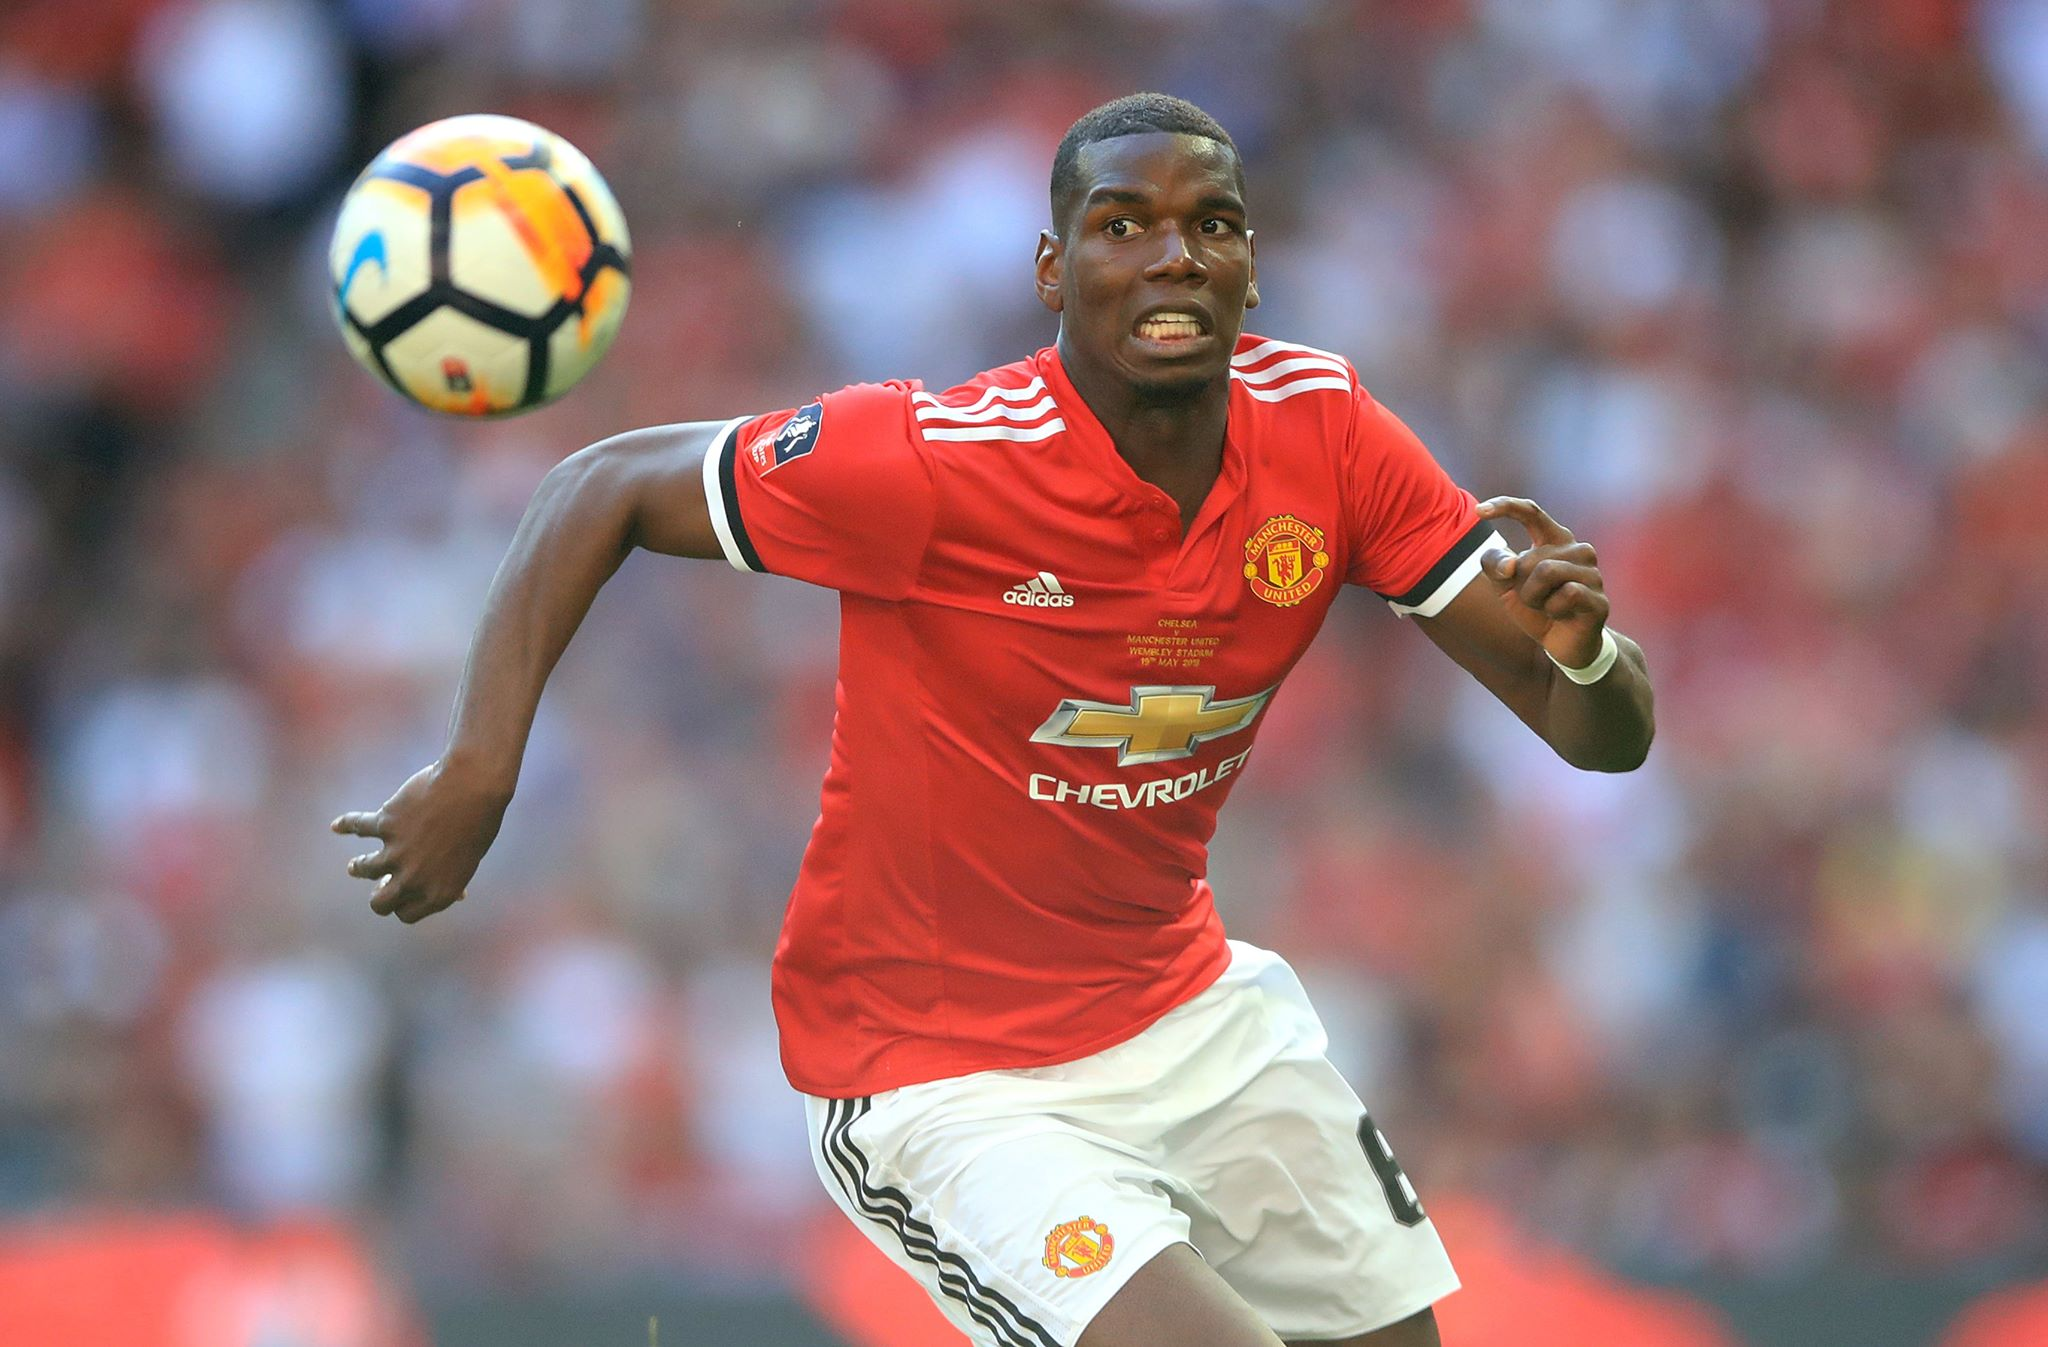 Pogba in action for United. Image: PA